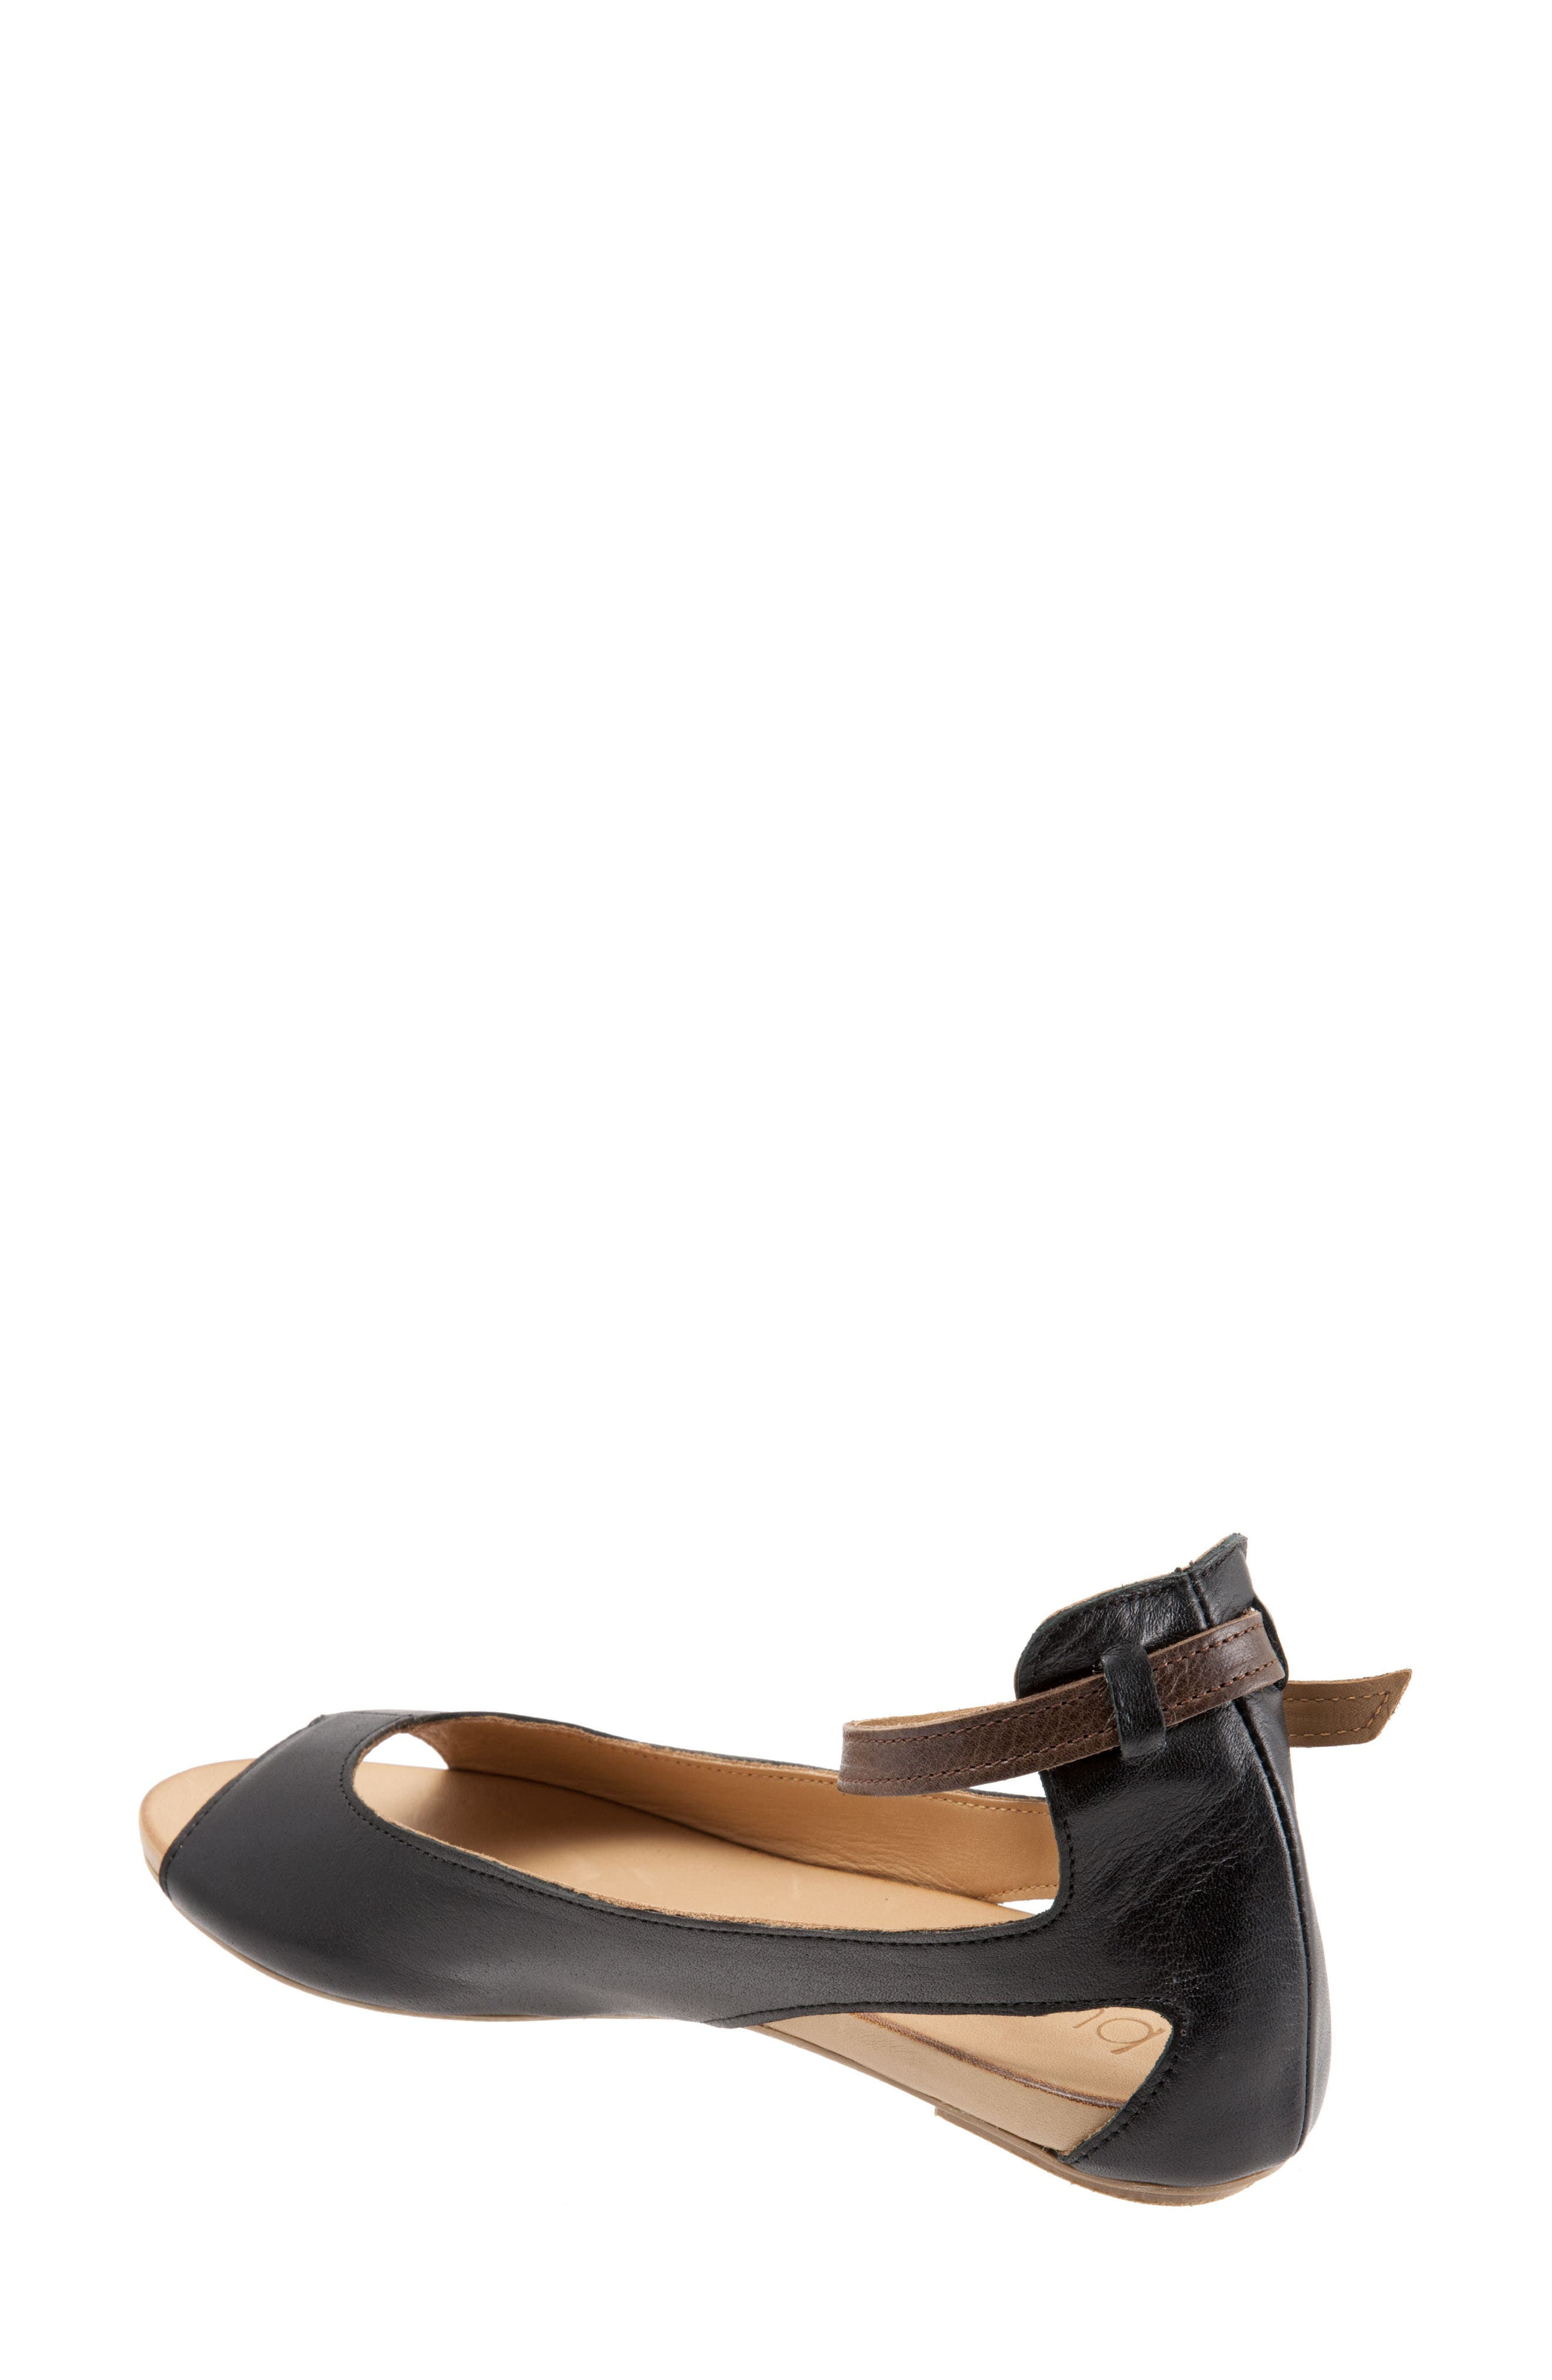 Donna Ankle Strap Sandal,                             Alternate thumbnail 2, color,                             BLACK LEATHER